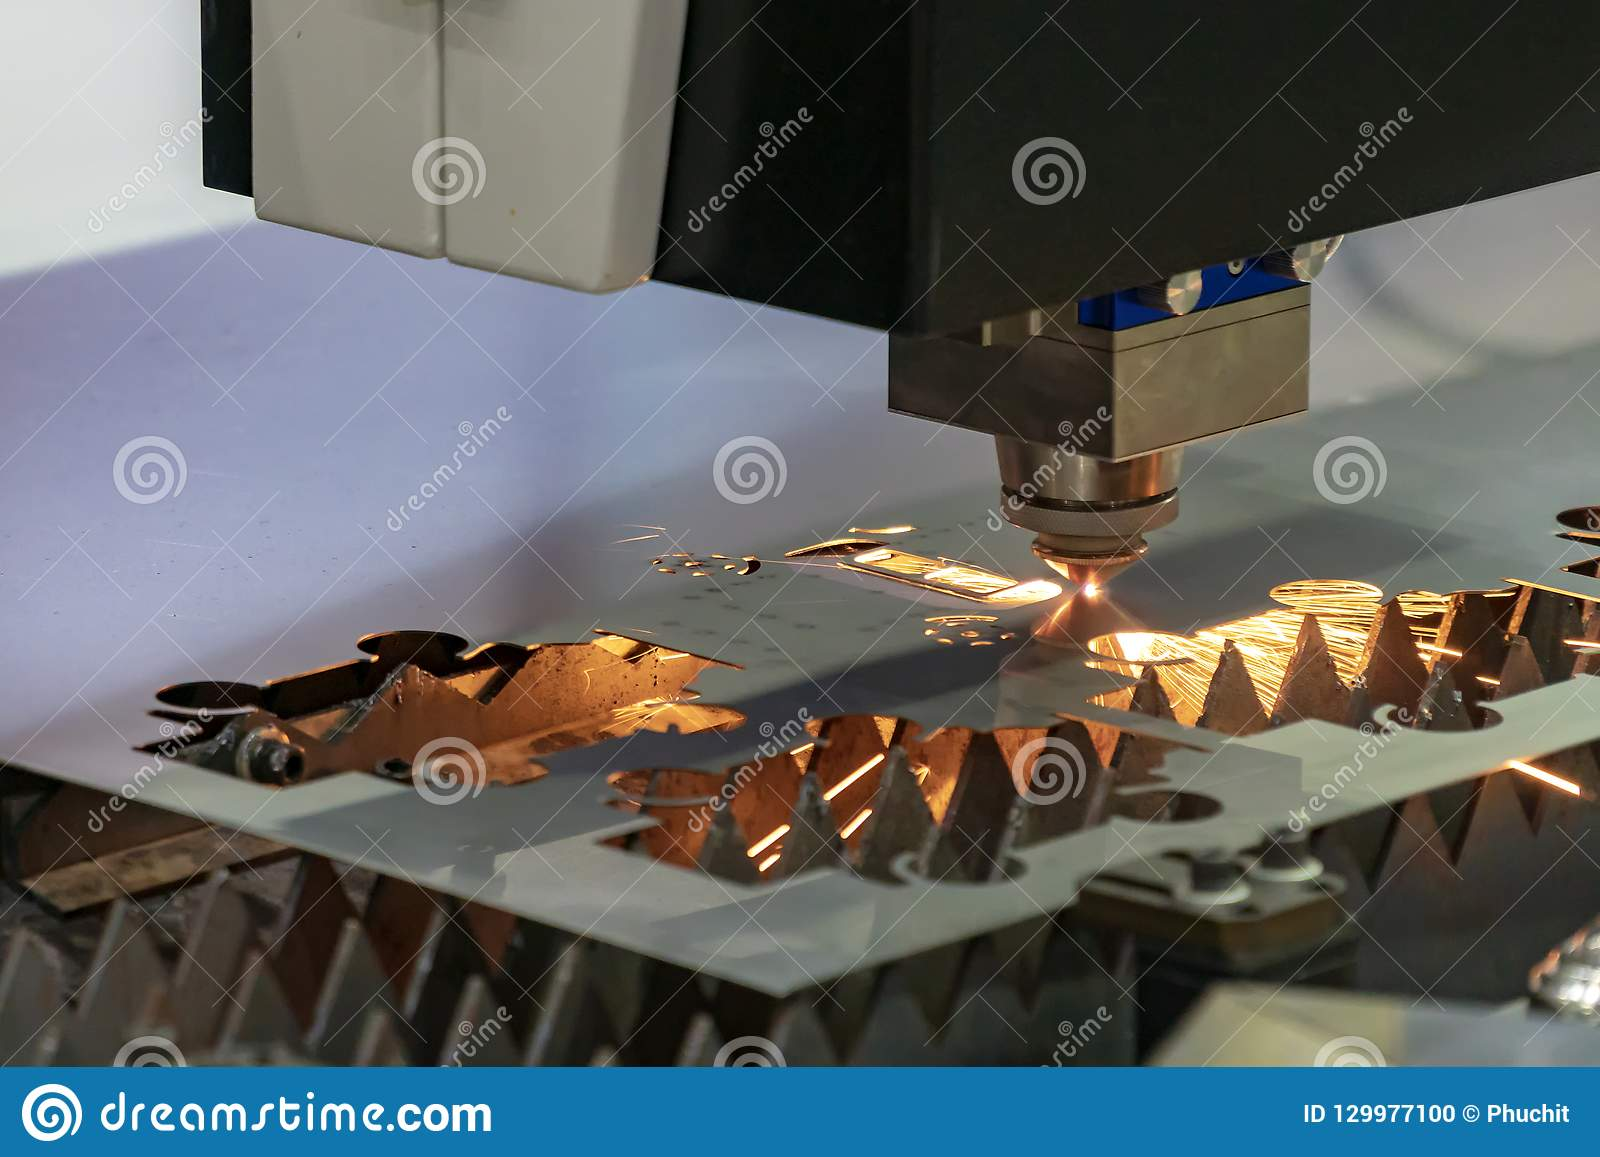 Laser Cutting Machine Metal The Cnc Fiber Laser Cutting Machine Cutting The Sheet Metal Plat